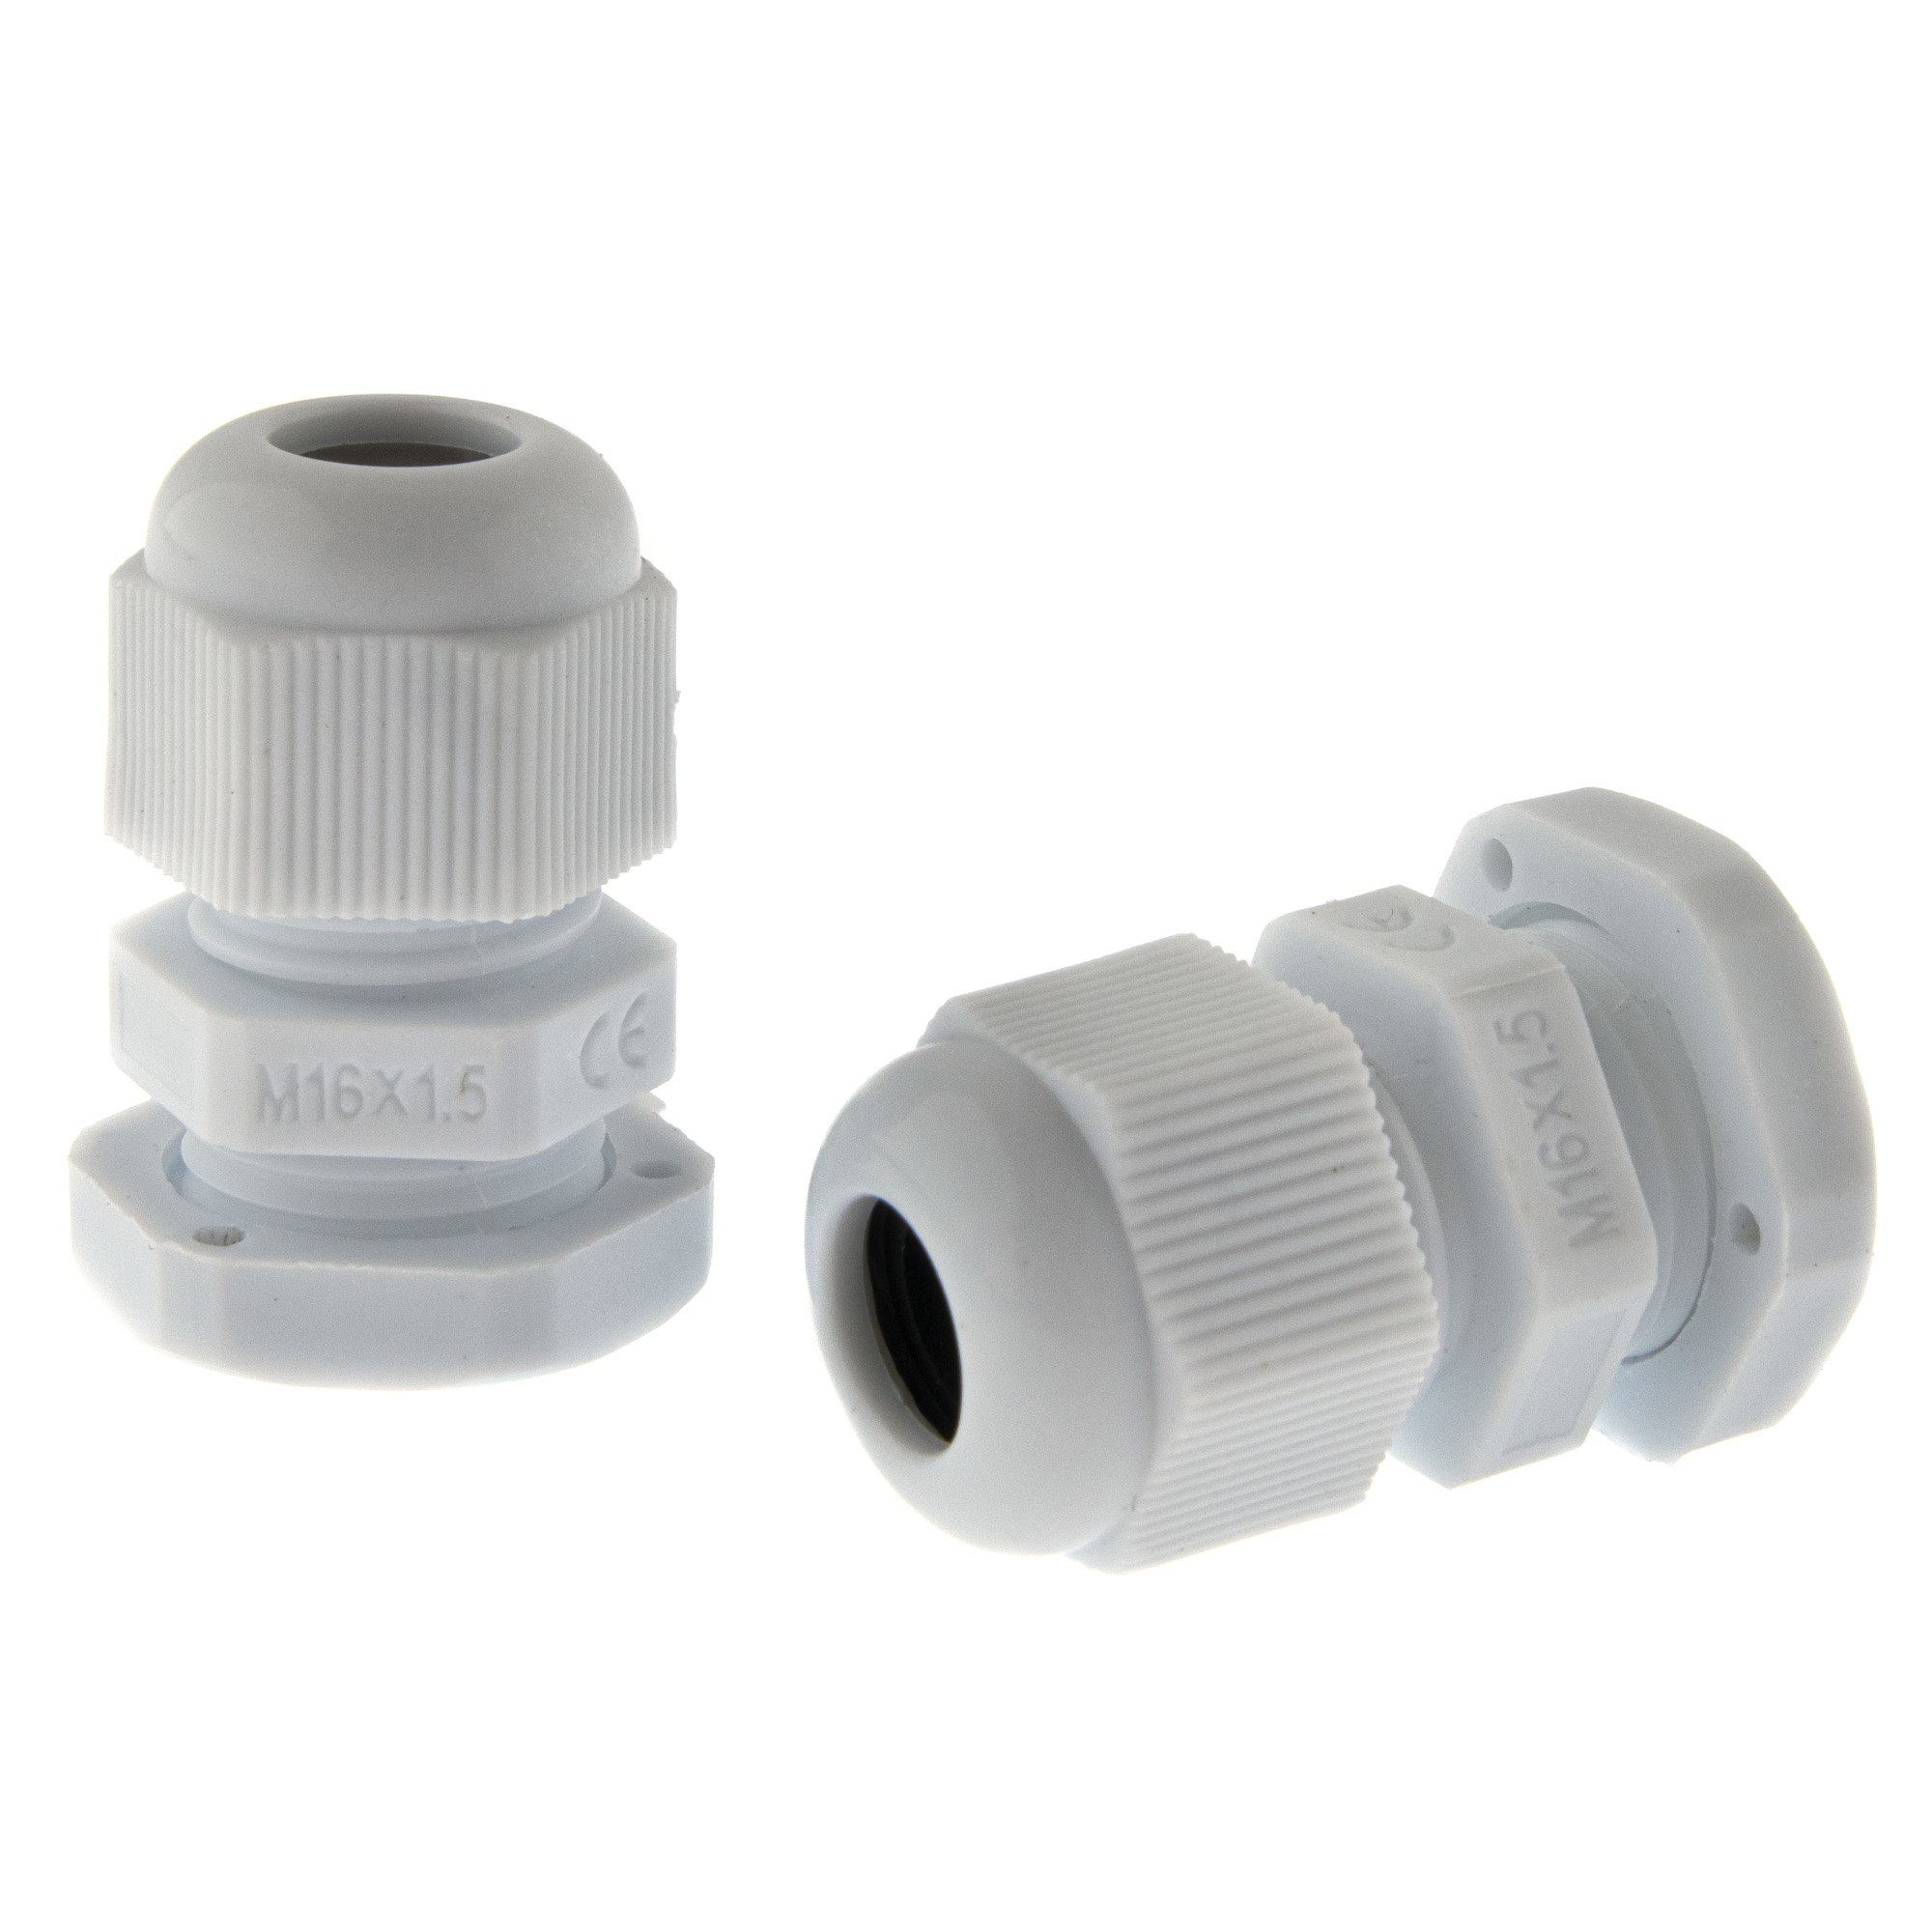 Cable gland M16 - grey